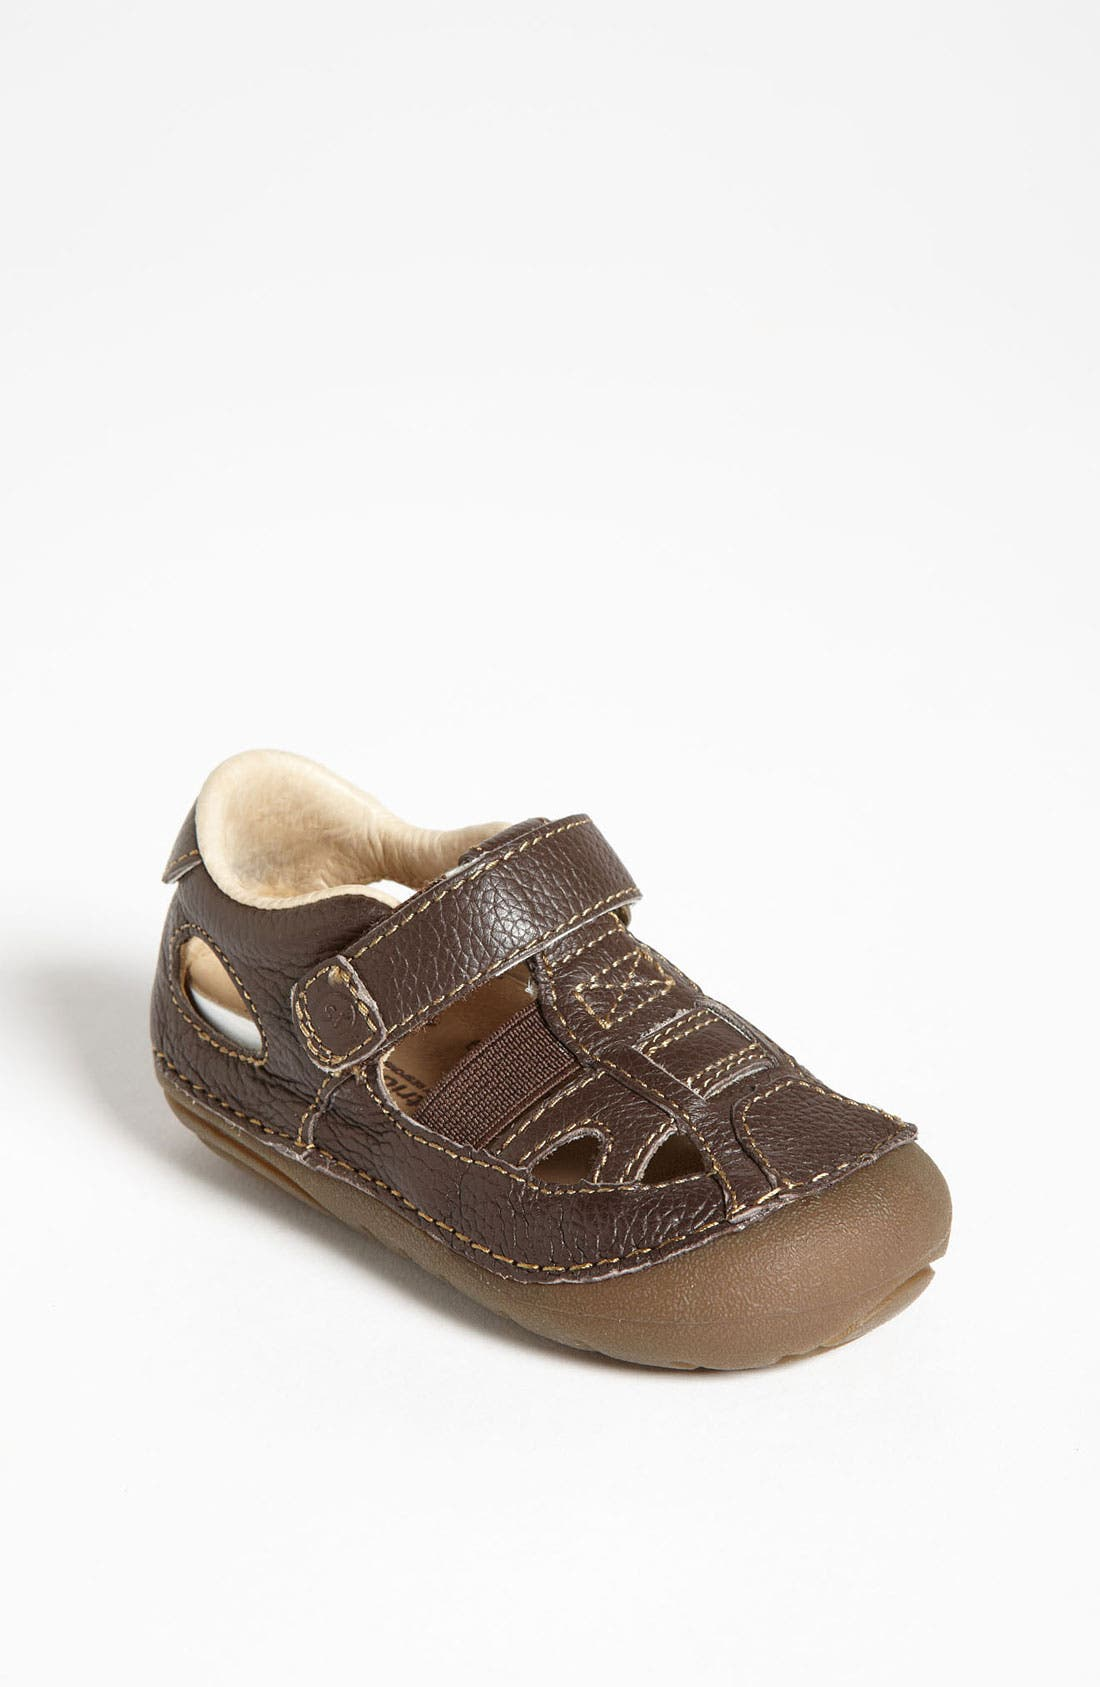 Alternate Image 1 Selected - Stride Rite 'Tony' Sandal (Baby & Walker)